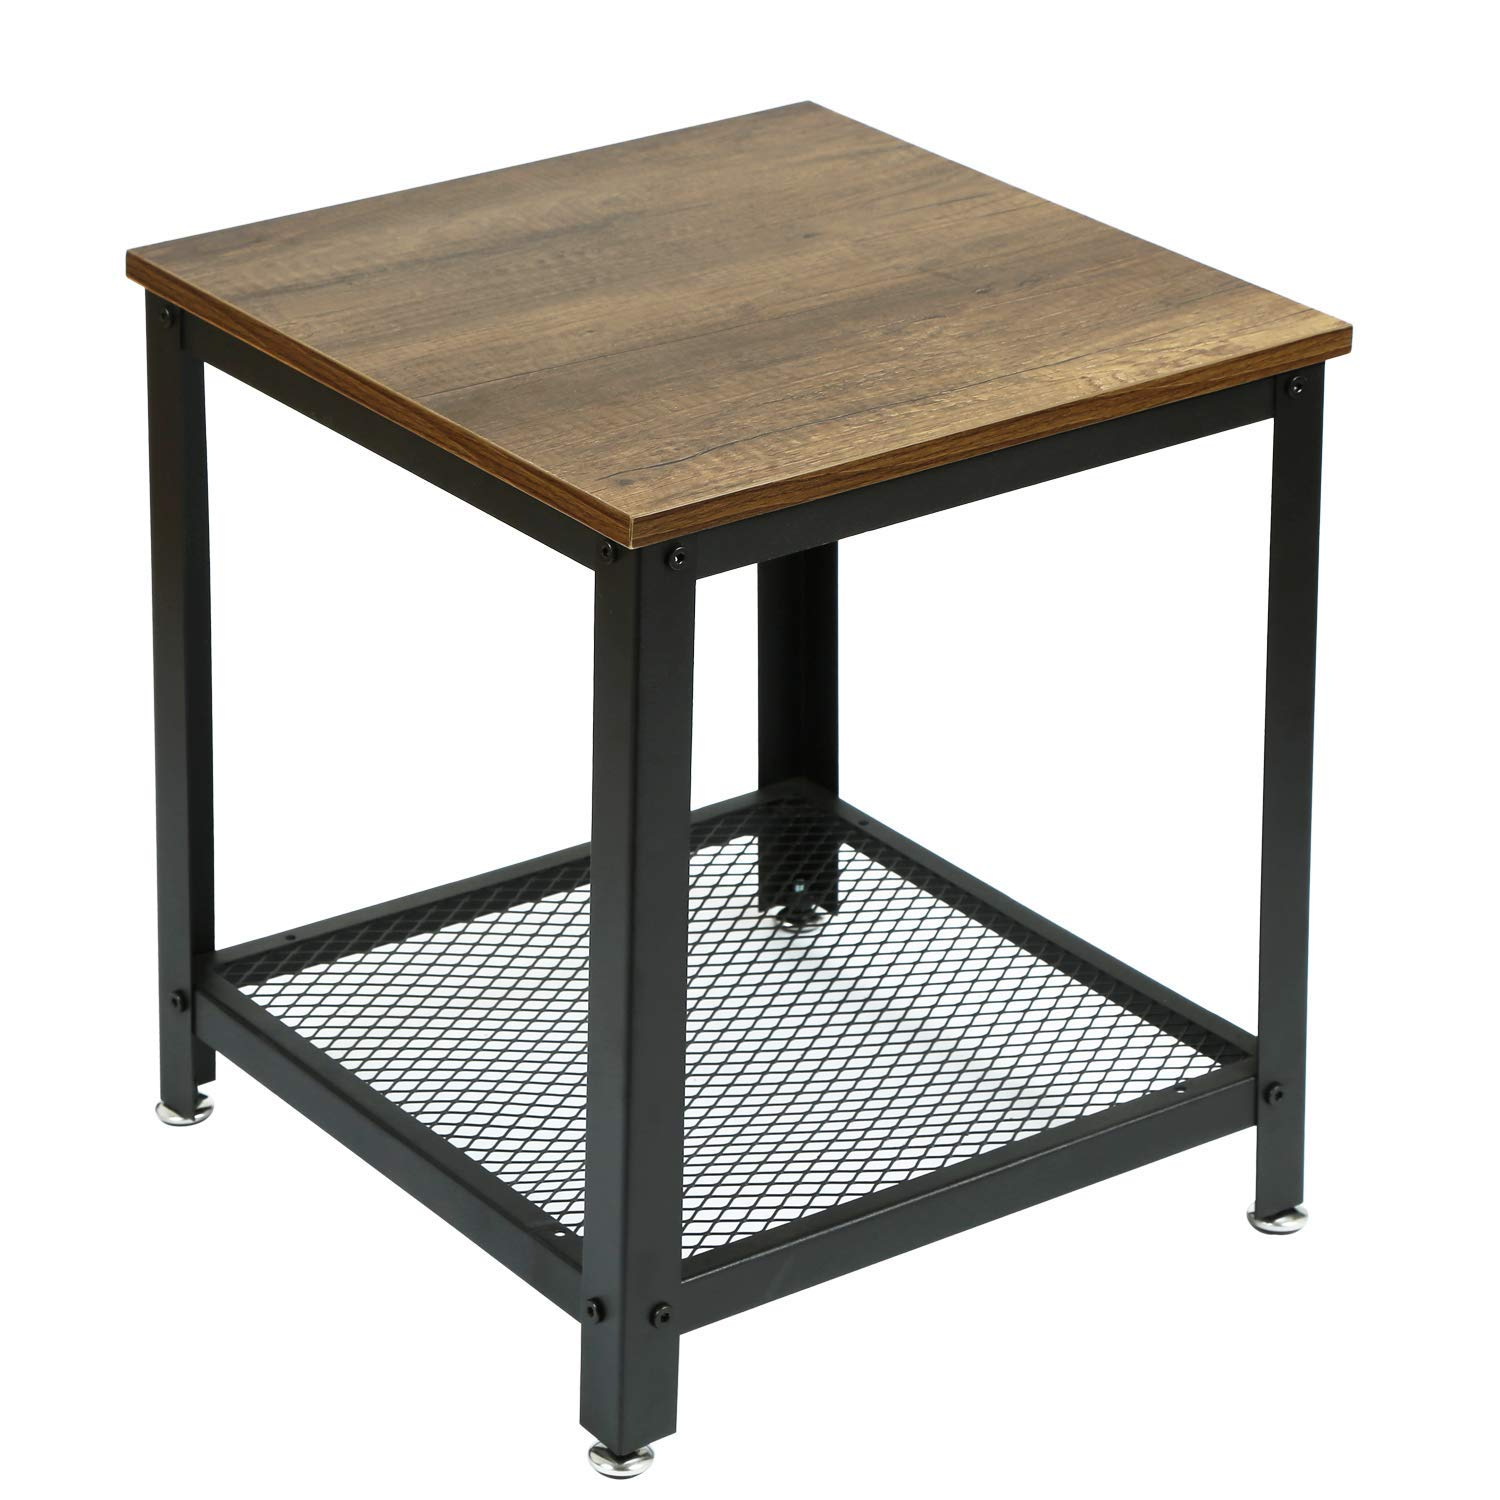 asense side table tier with storage shelf accent wooden top sturdy metal frame height inches kitchen dining solid wood coffee and end tables small glass chairs antique round lamp